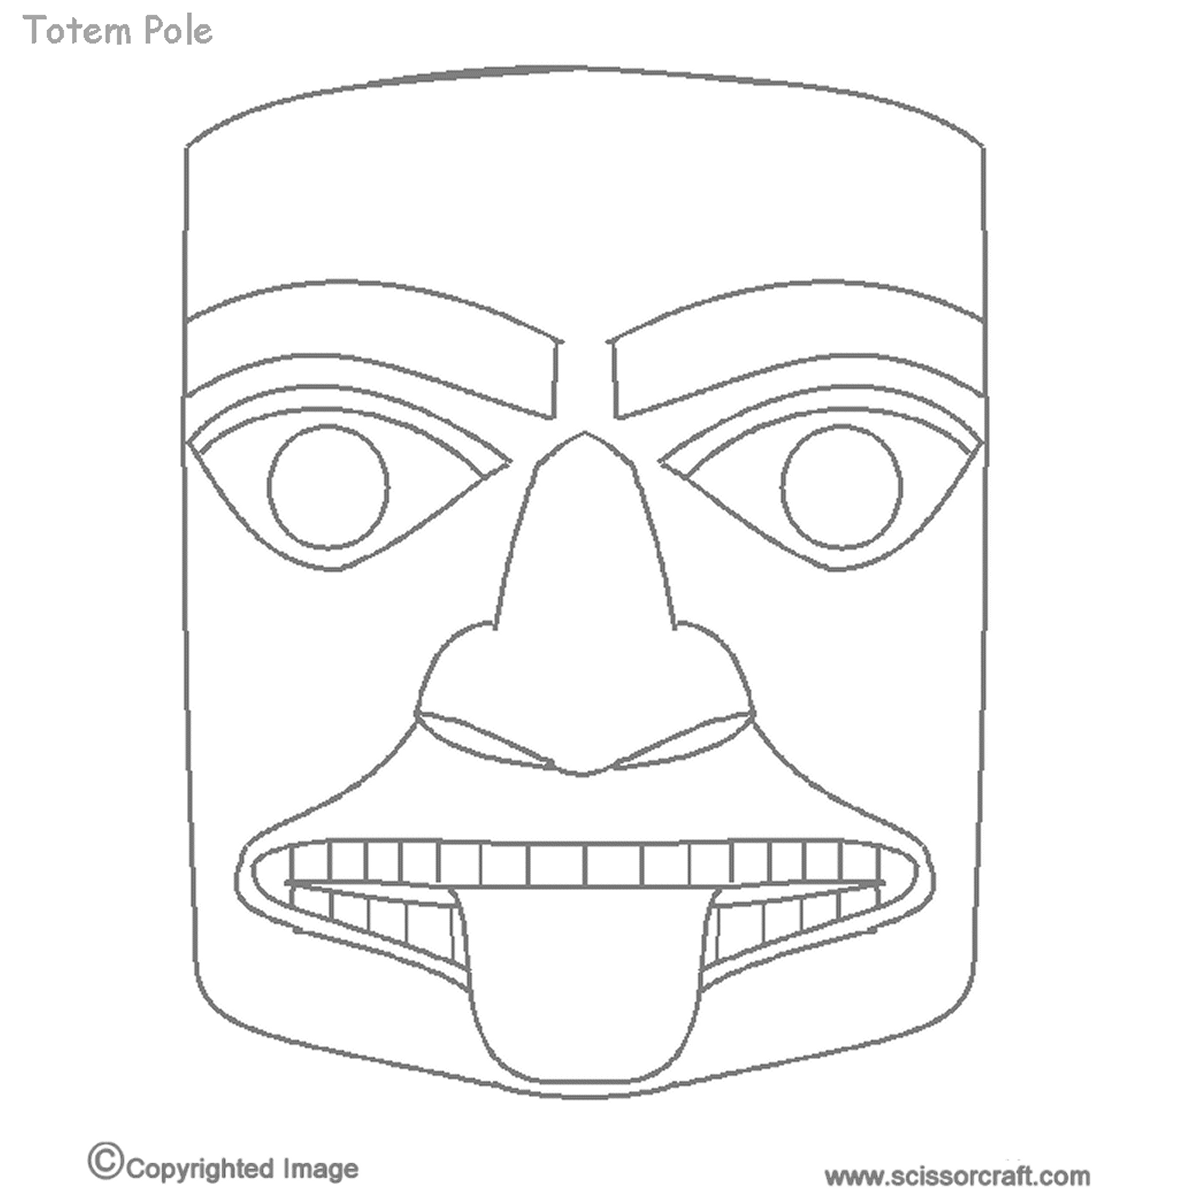 Image Result For Printable Totem Pole Faces